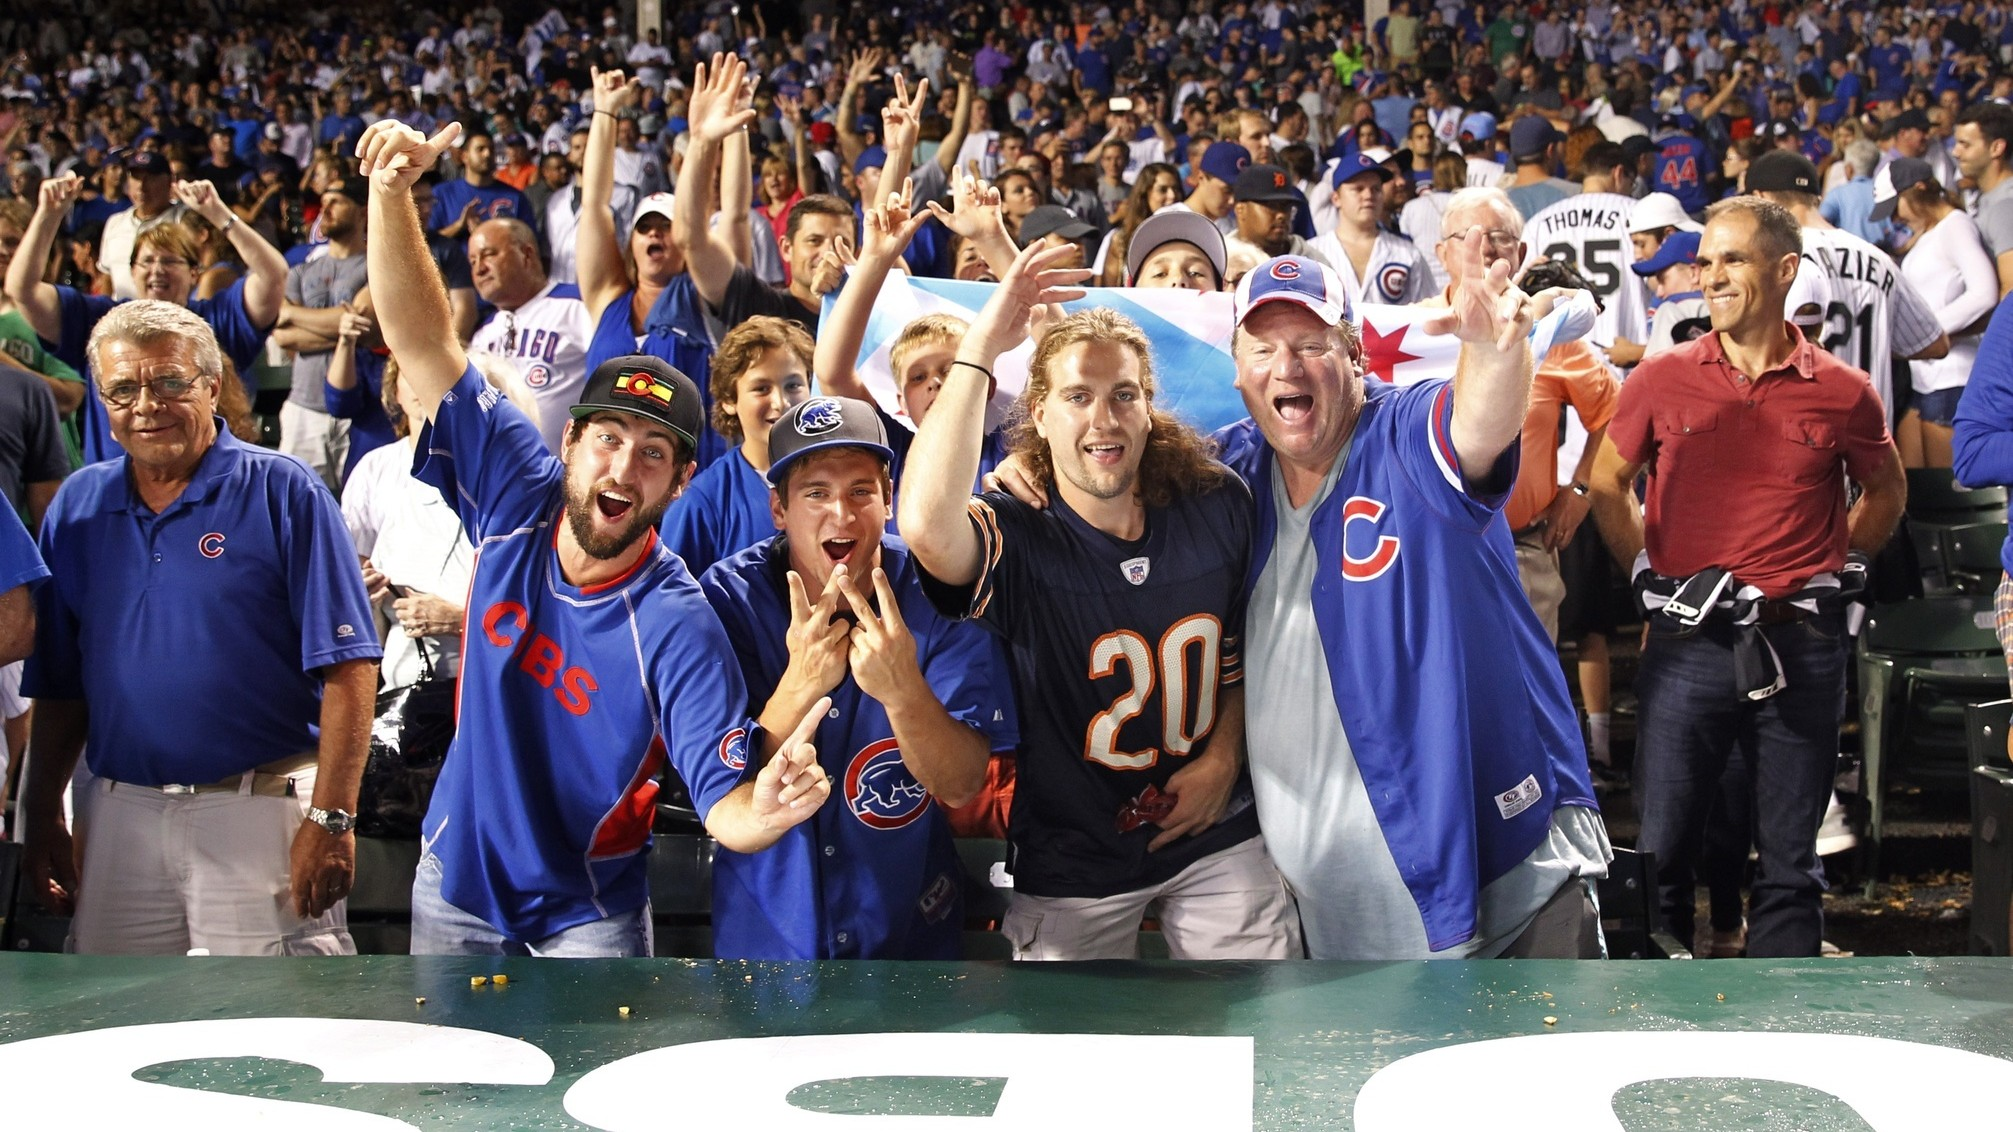 Home Games: The Strange Overlapping Borders of Sports Fandom